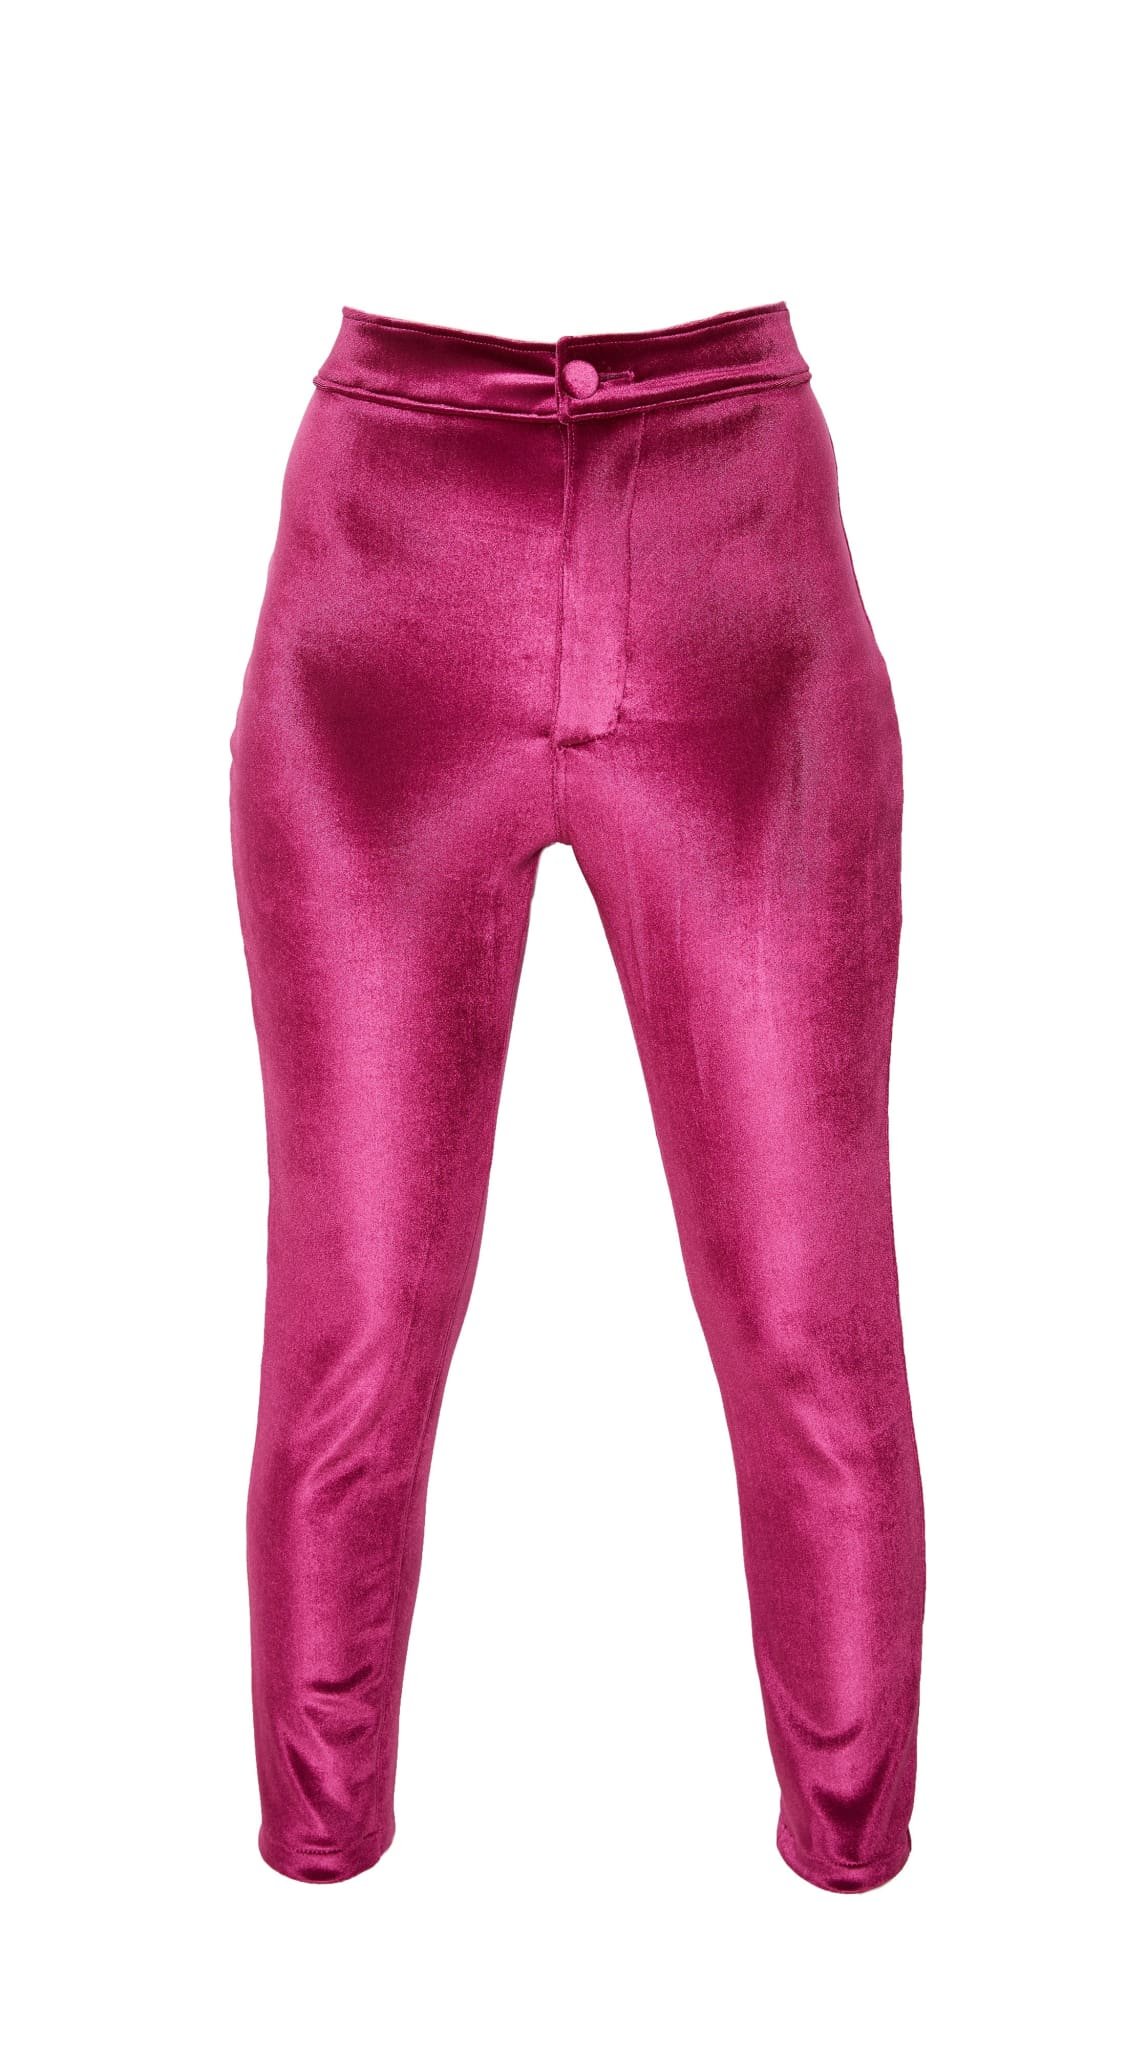 Pink Hi-Waisted Stretch Velour Cigarette Pants by Meghan Hughes | Nineteenth Amendment